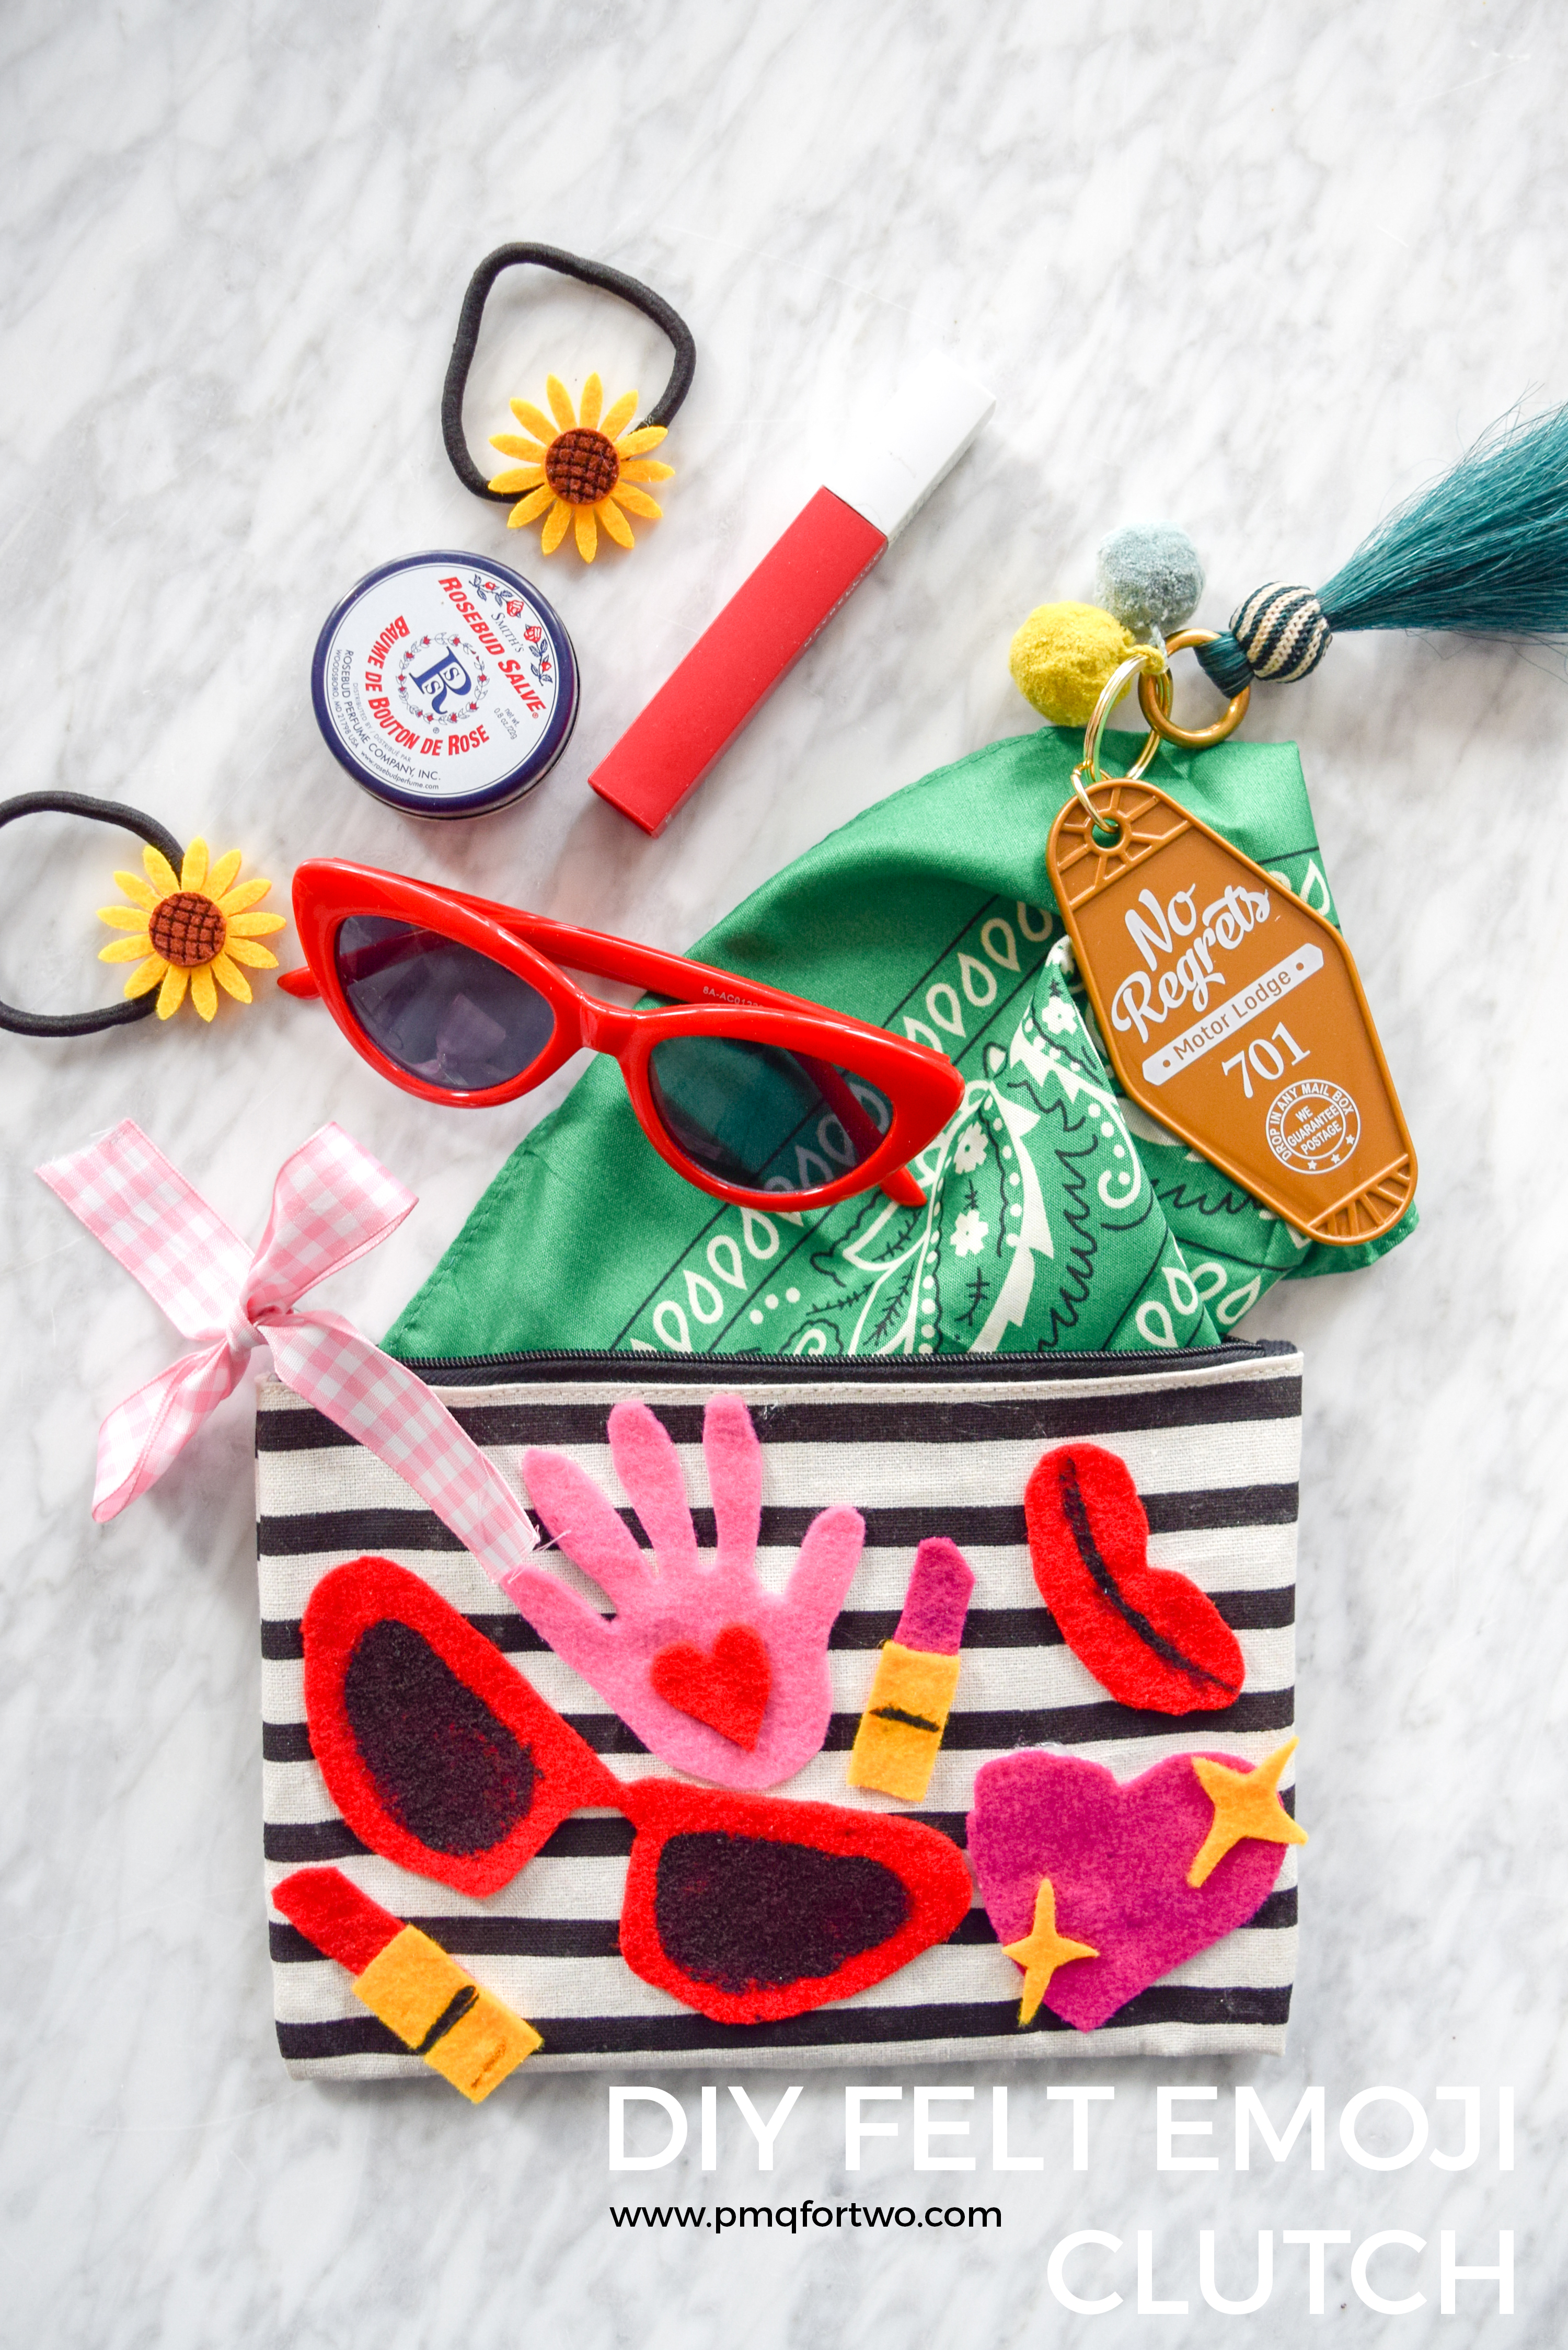 10$ at the dollar store gave me everything I needed to make a DIY Felt Emoji Clutch - just in time for summer! Grab all the deets and more, on the blog.